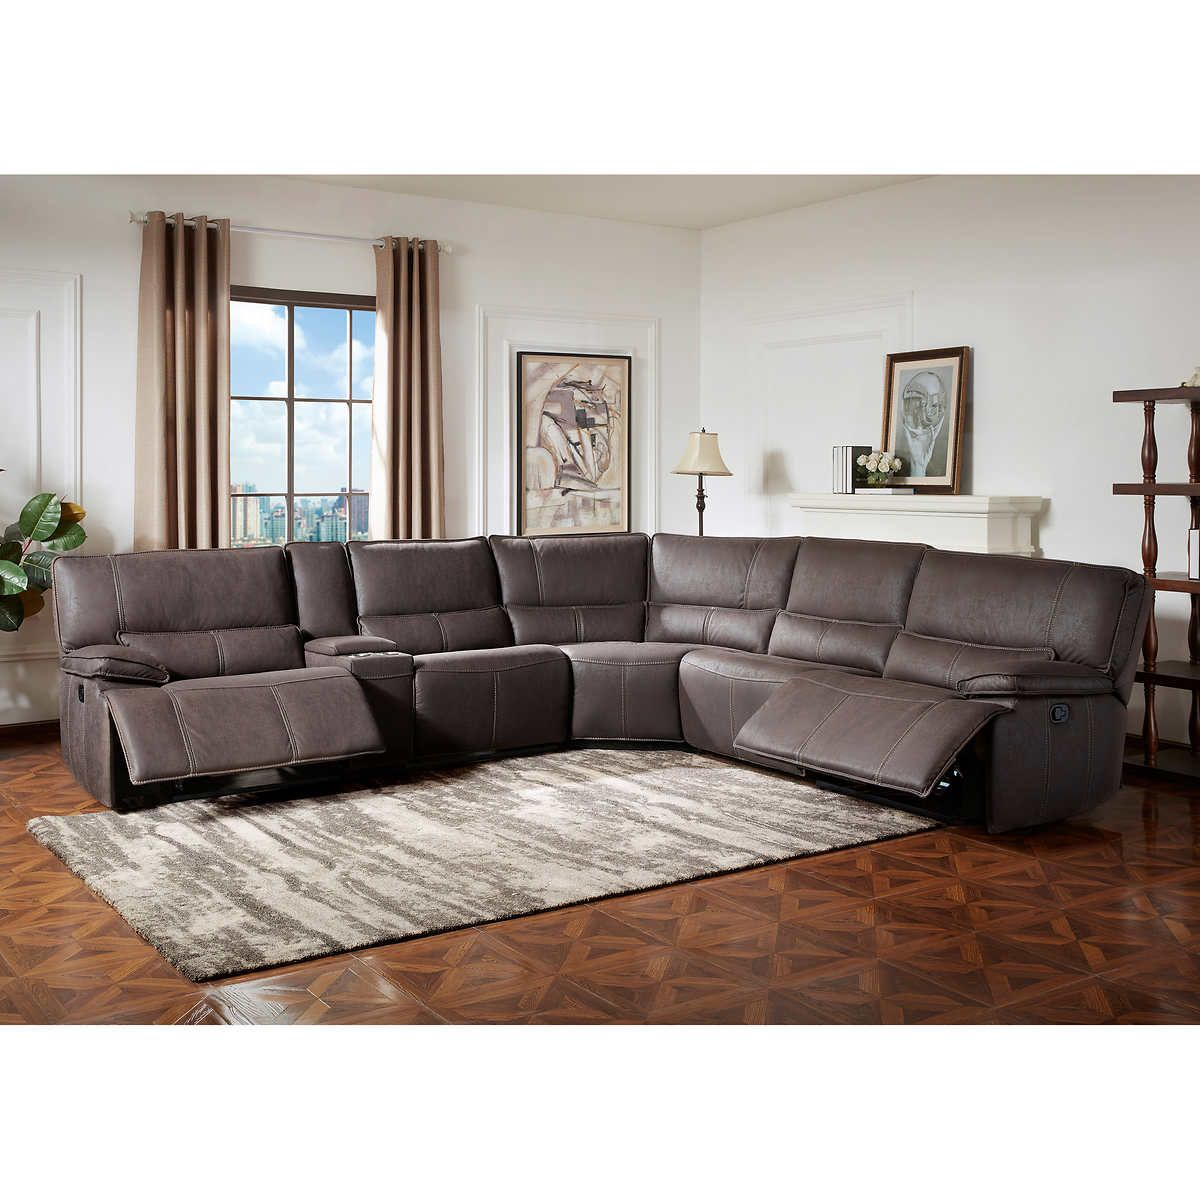 Brilliant Bailey 6 Piece Fabric Power Sectional In 2019 Sectional Spiritservingveterans Wood Chair Design Ideas Spiritservingveteransorg